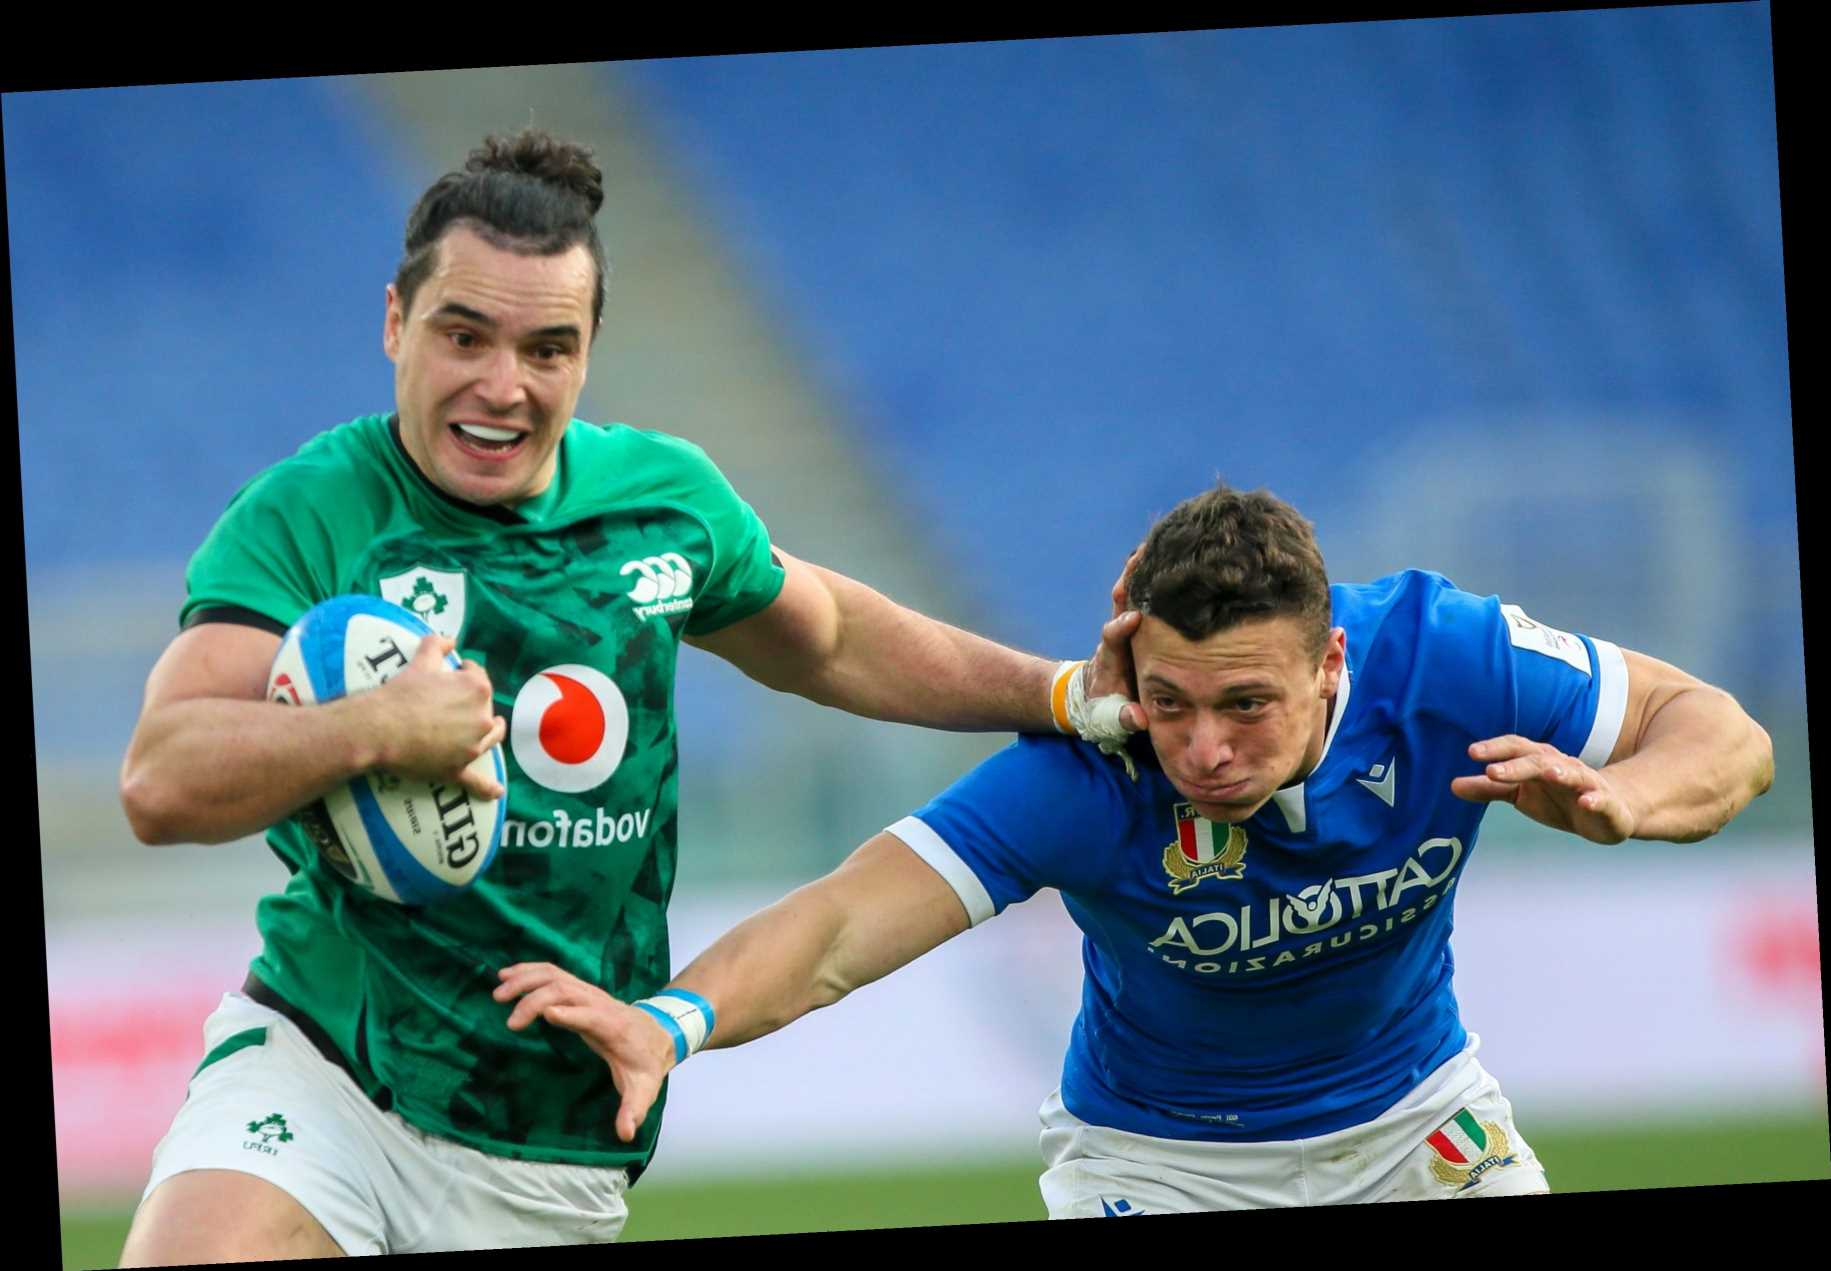 When did Italy last win a Six Nations match and what's their best performance to date in the tournament?